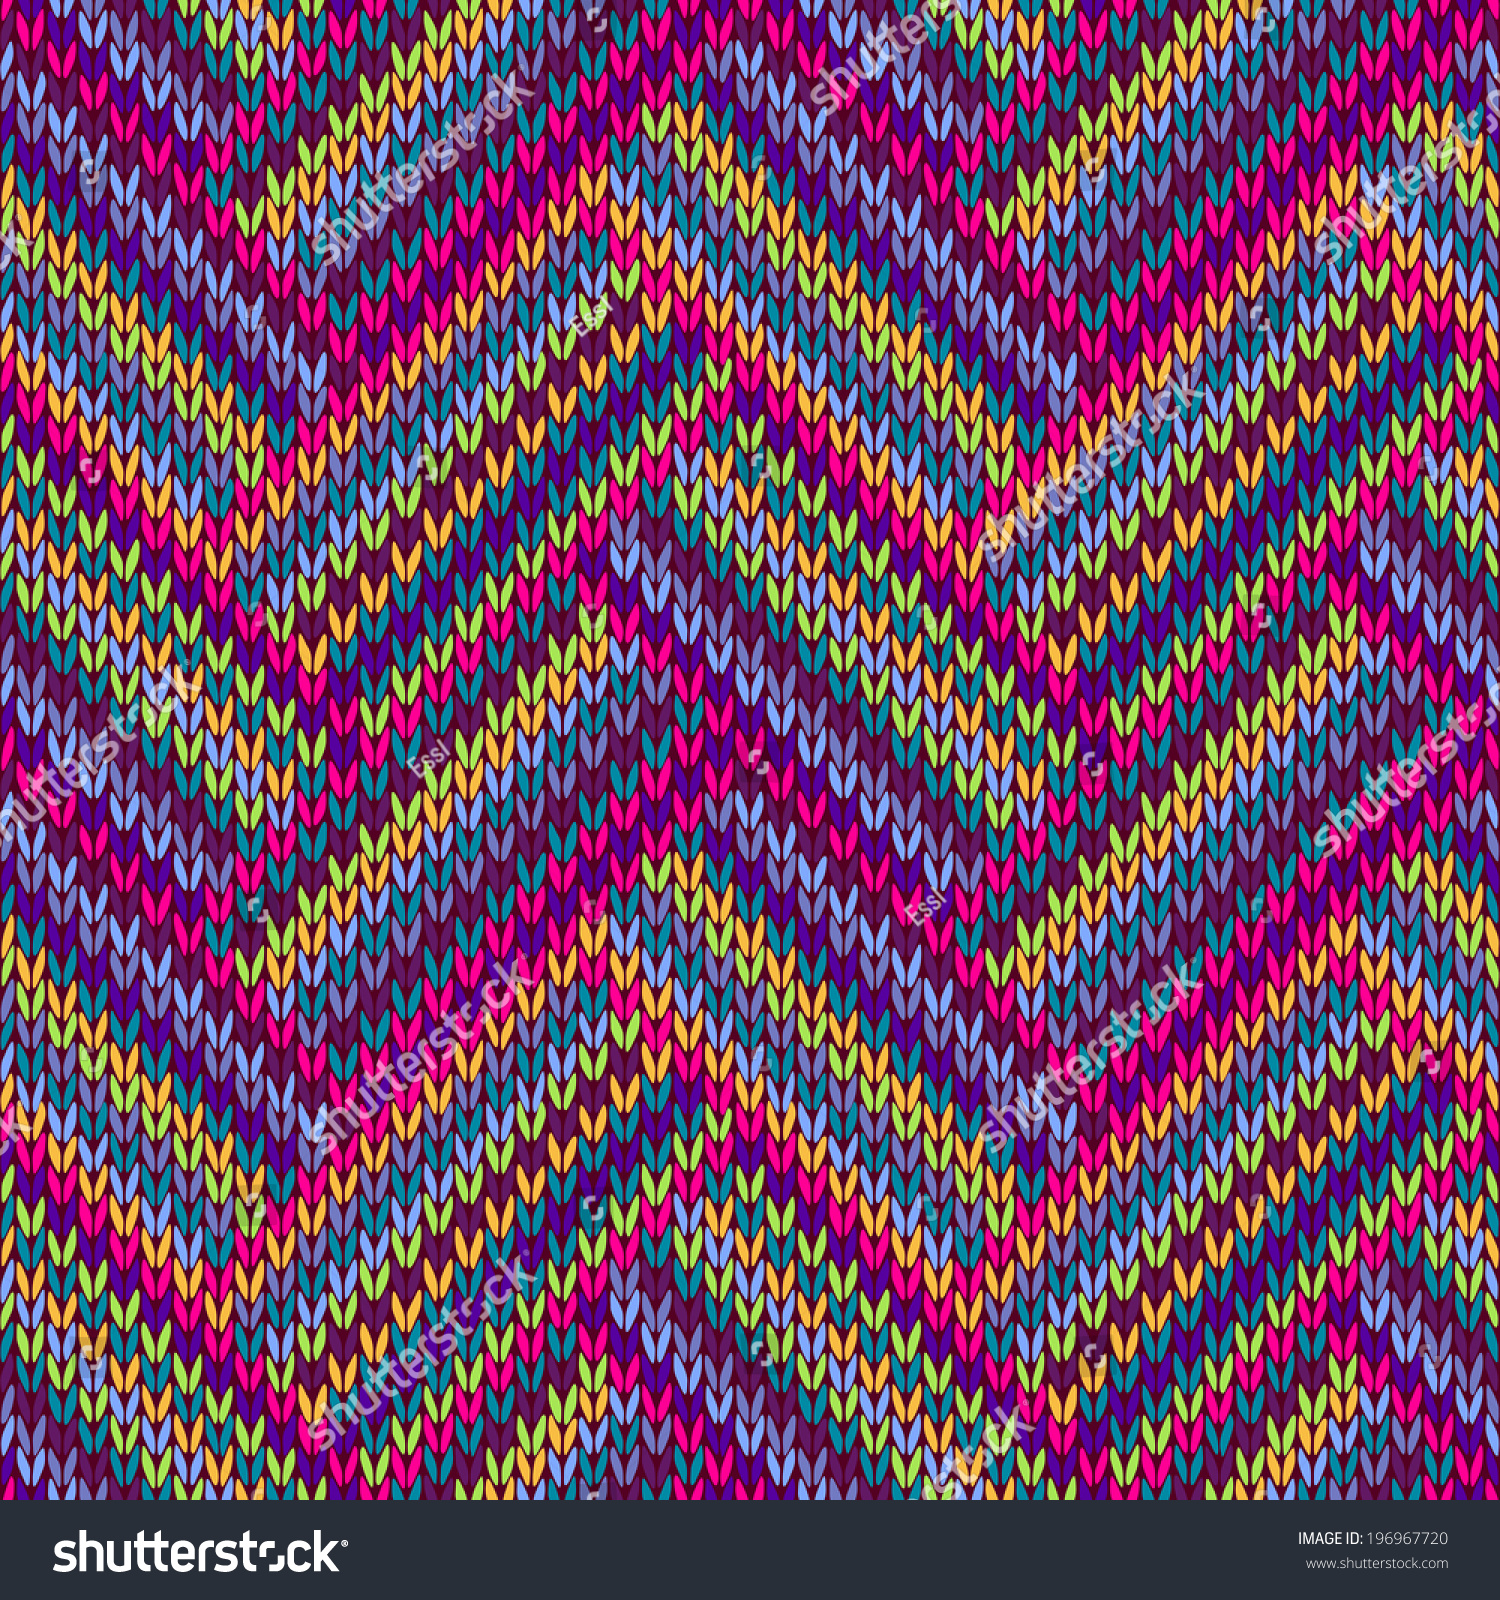 Multicolored Seamless Funny Knitted Pattern Stock Illustration ...